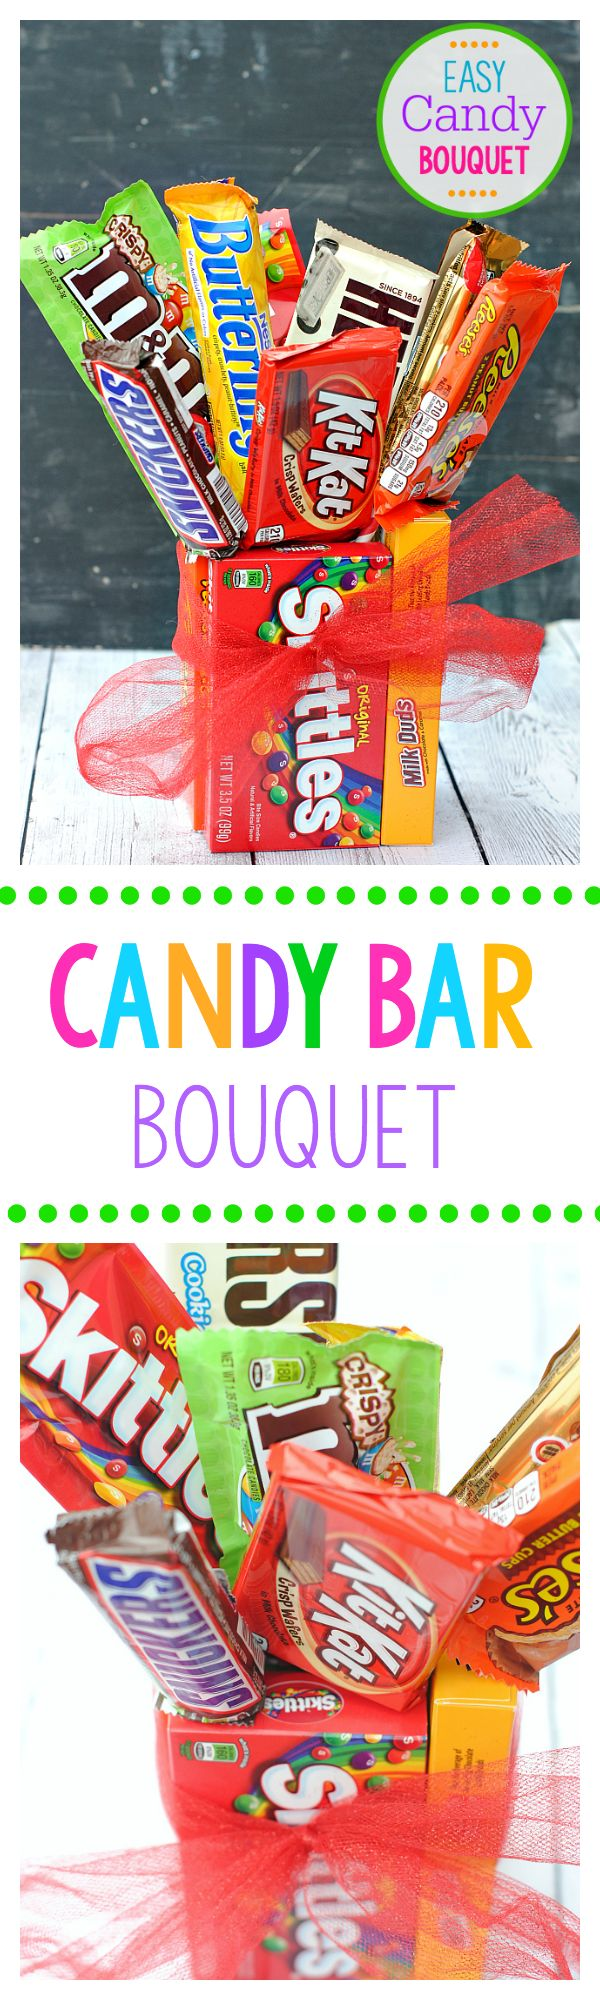 Make a Cute Candy Bar Bouquet for Birthdays or Special Occasions